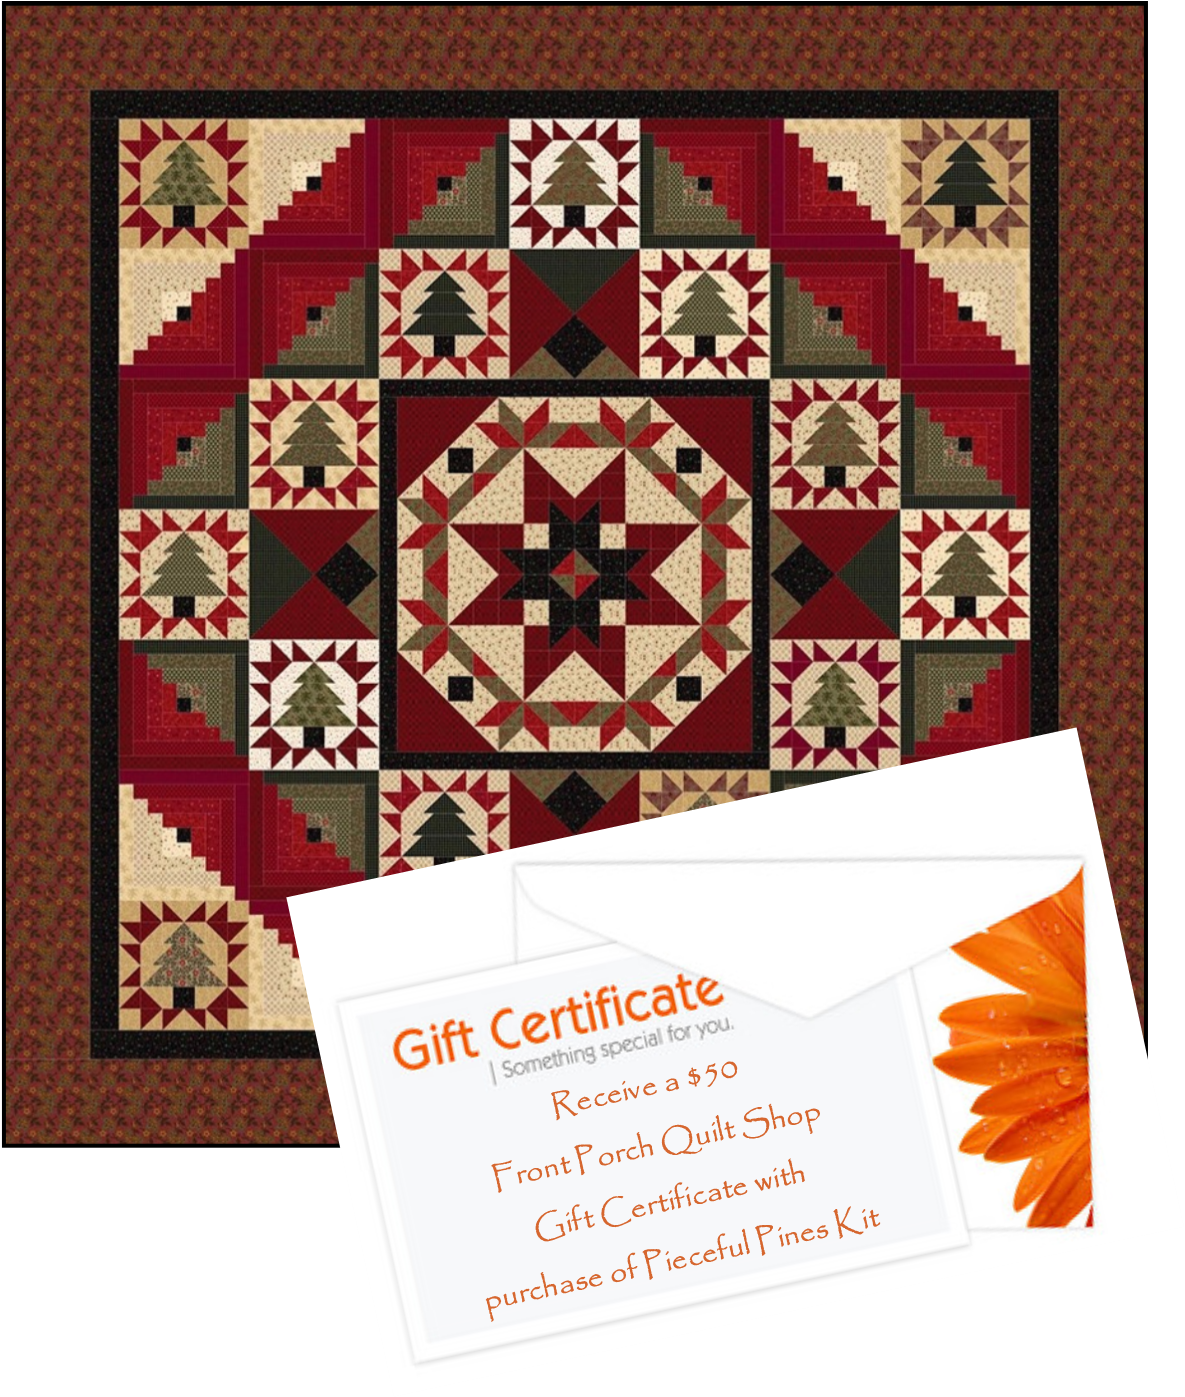 Pieceful Pines Kit PLUS $50 FPQ Gift Certificate